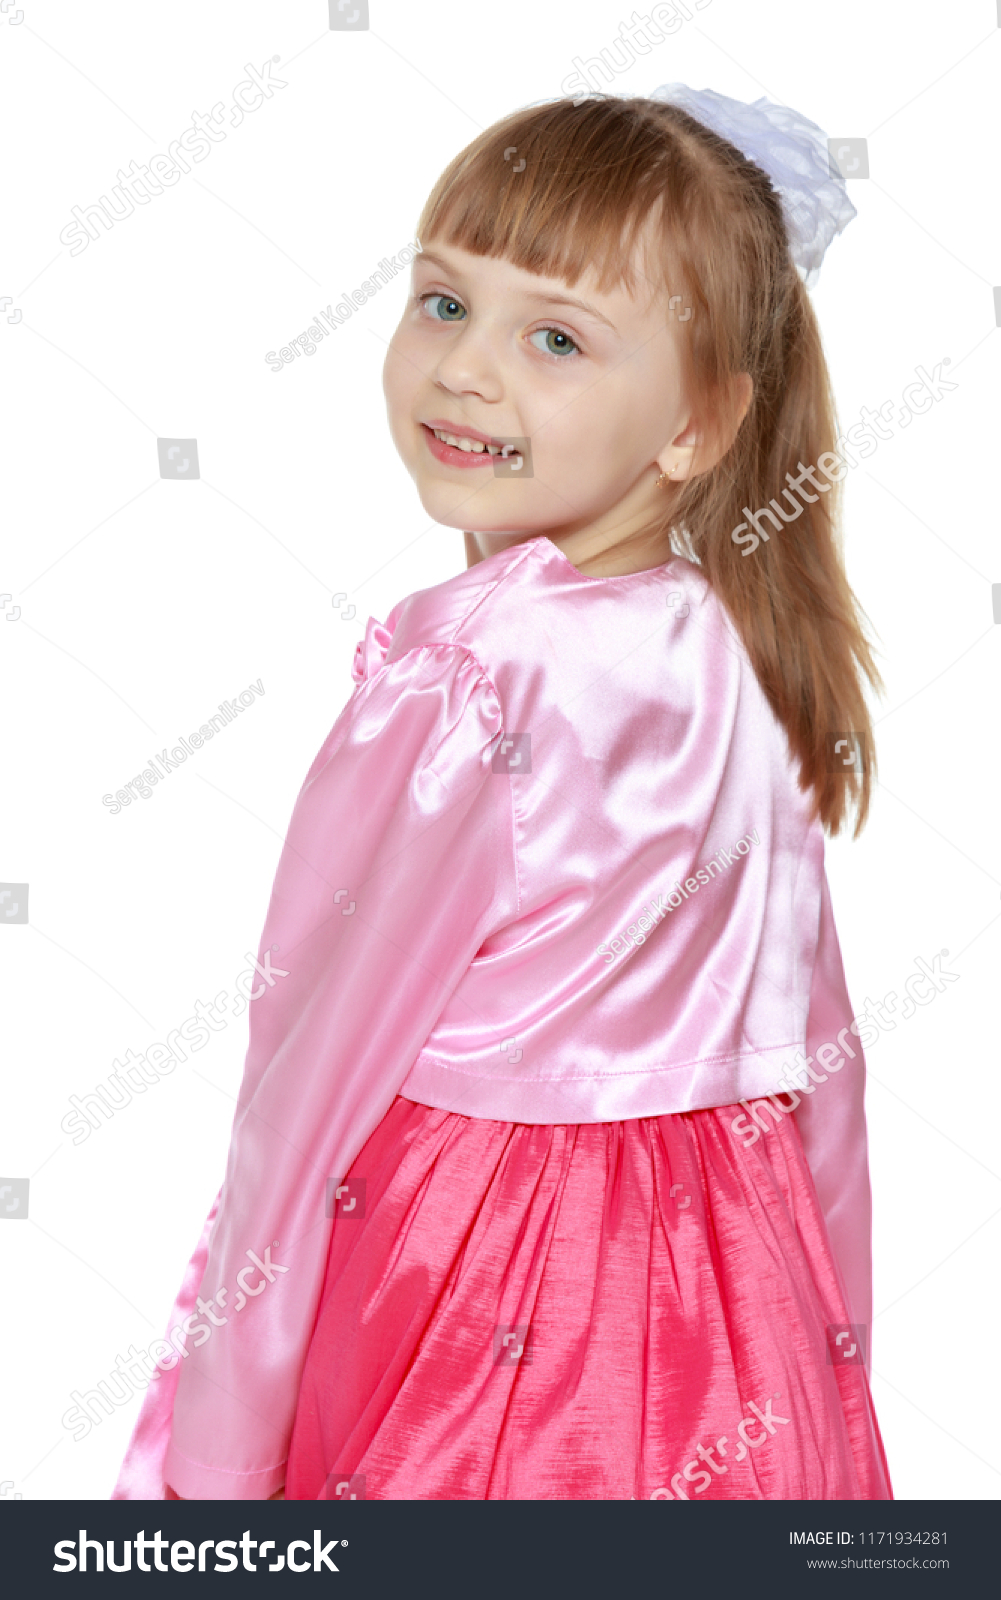 3b1a99aa957 Beautiful Little Girl 6 Years Old Stock Photo (Edit Now) 1171934281 ...